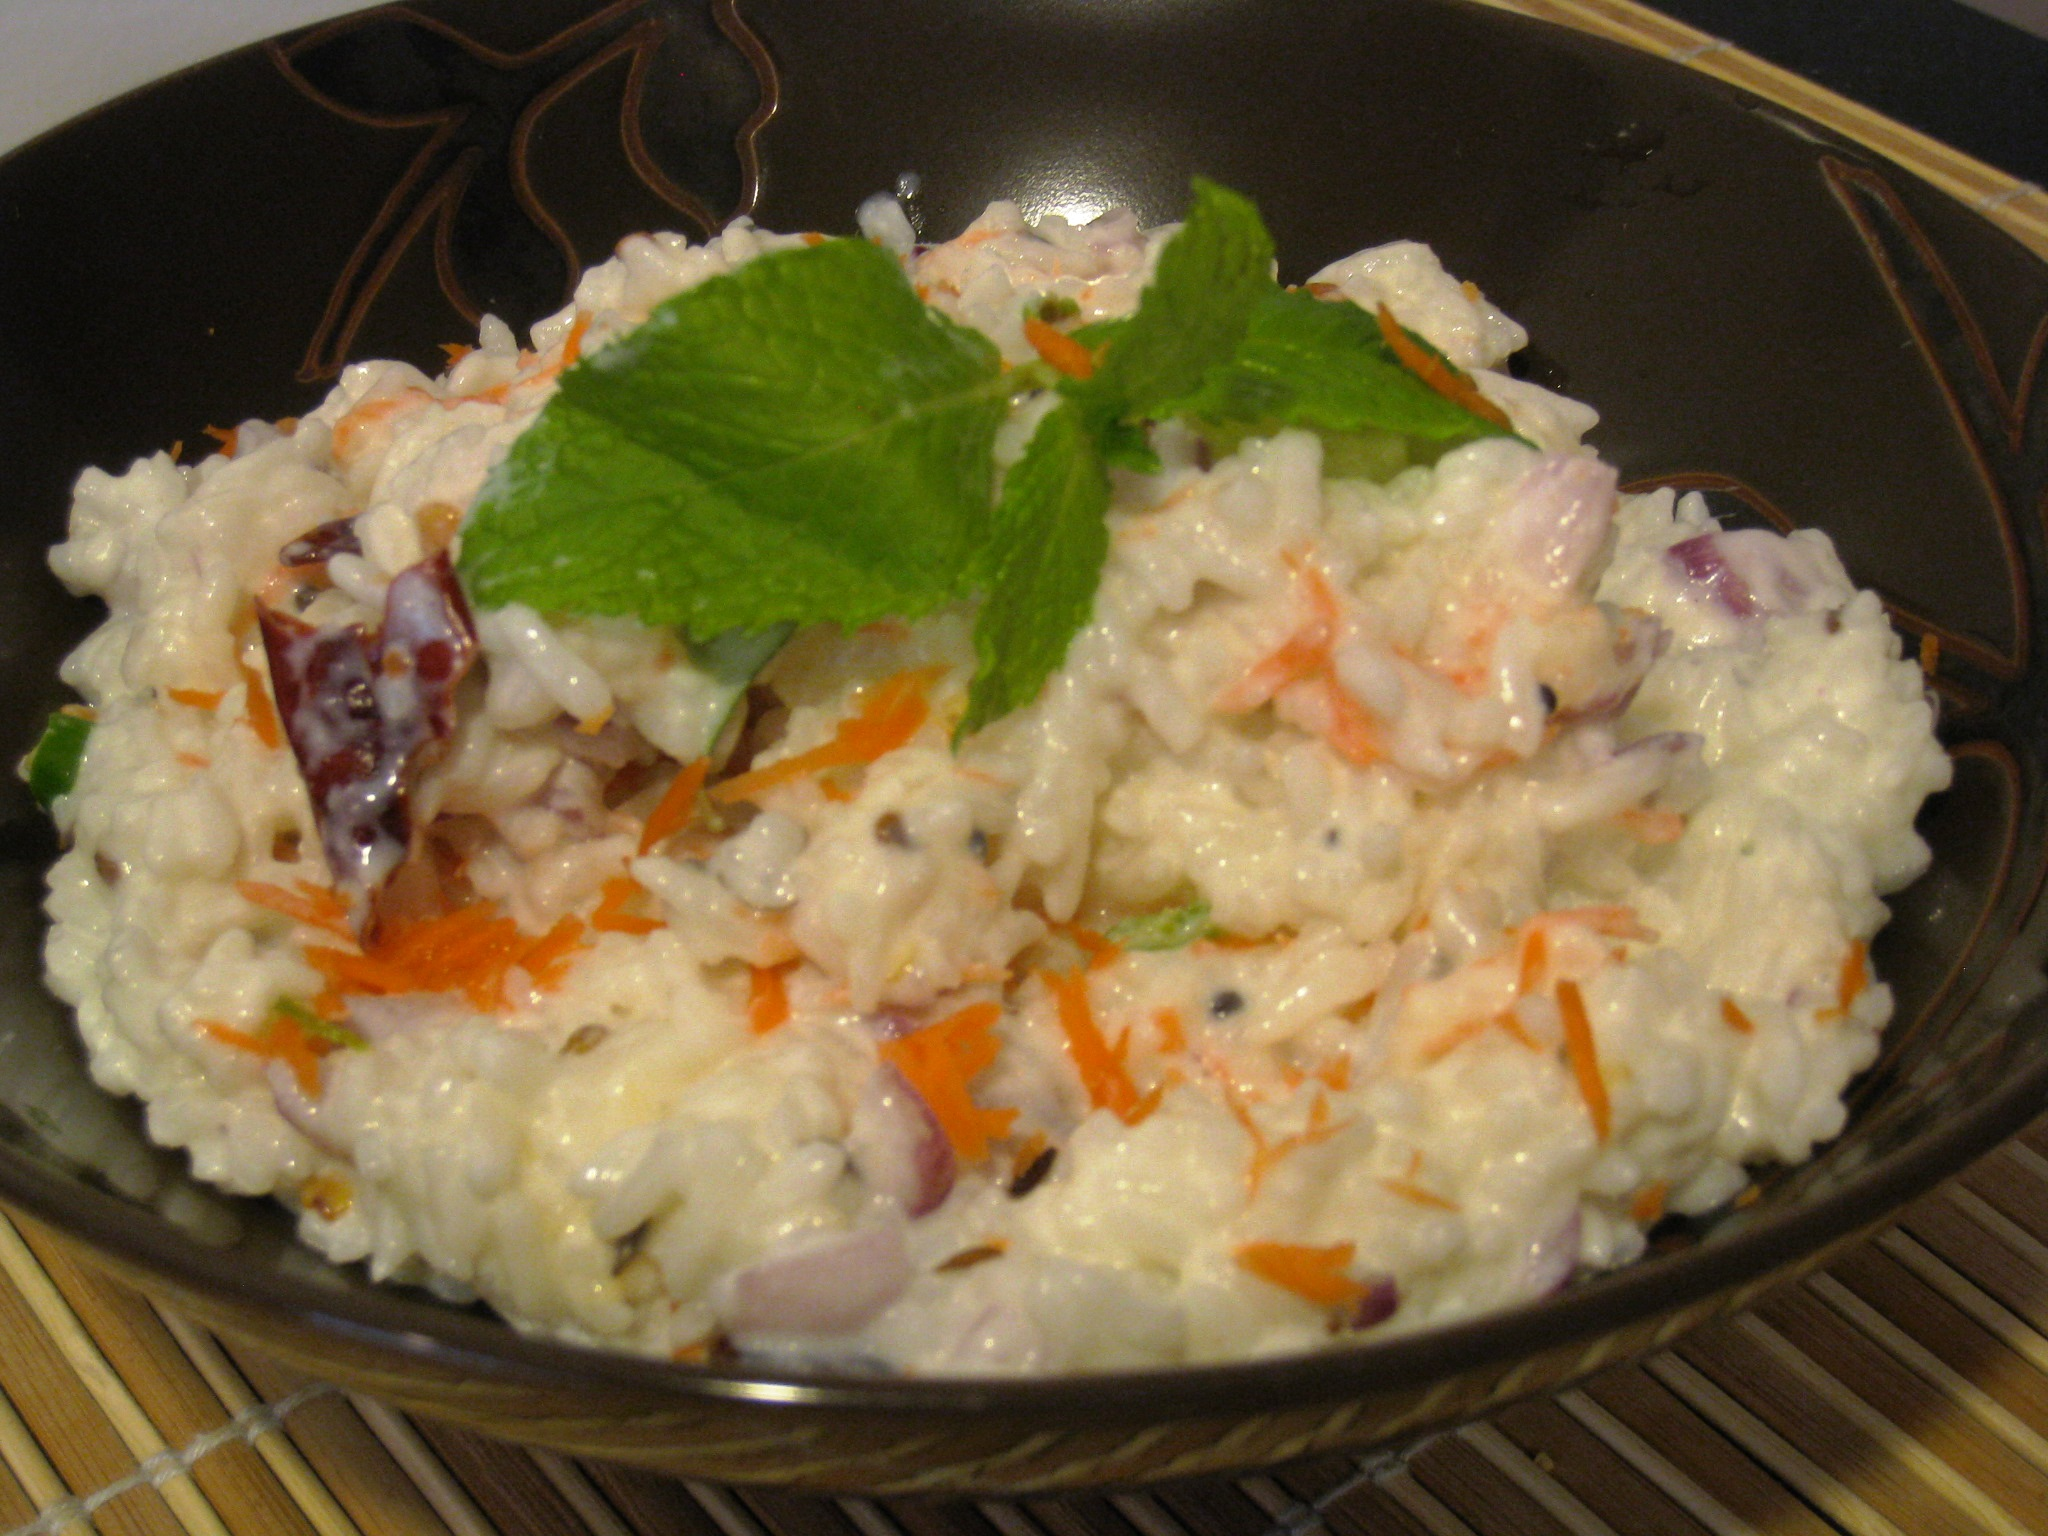 yogurt rice or curd rice as it s known in india is the easiest dish